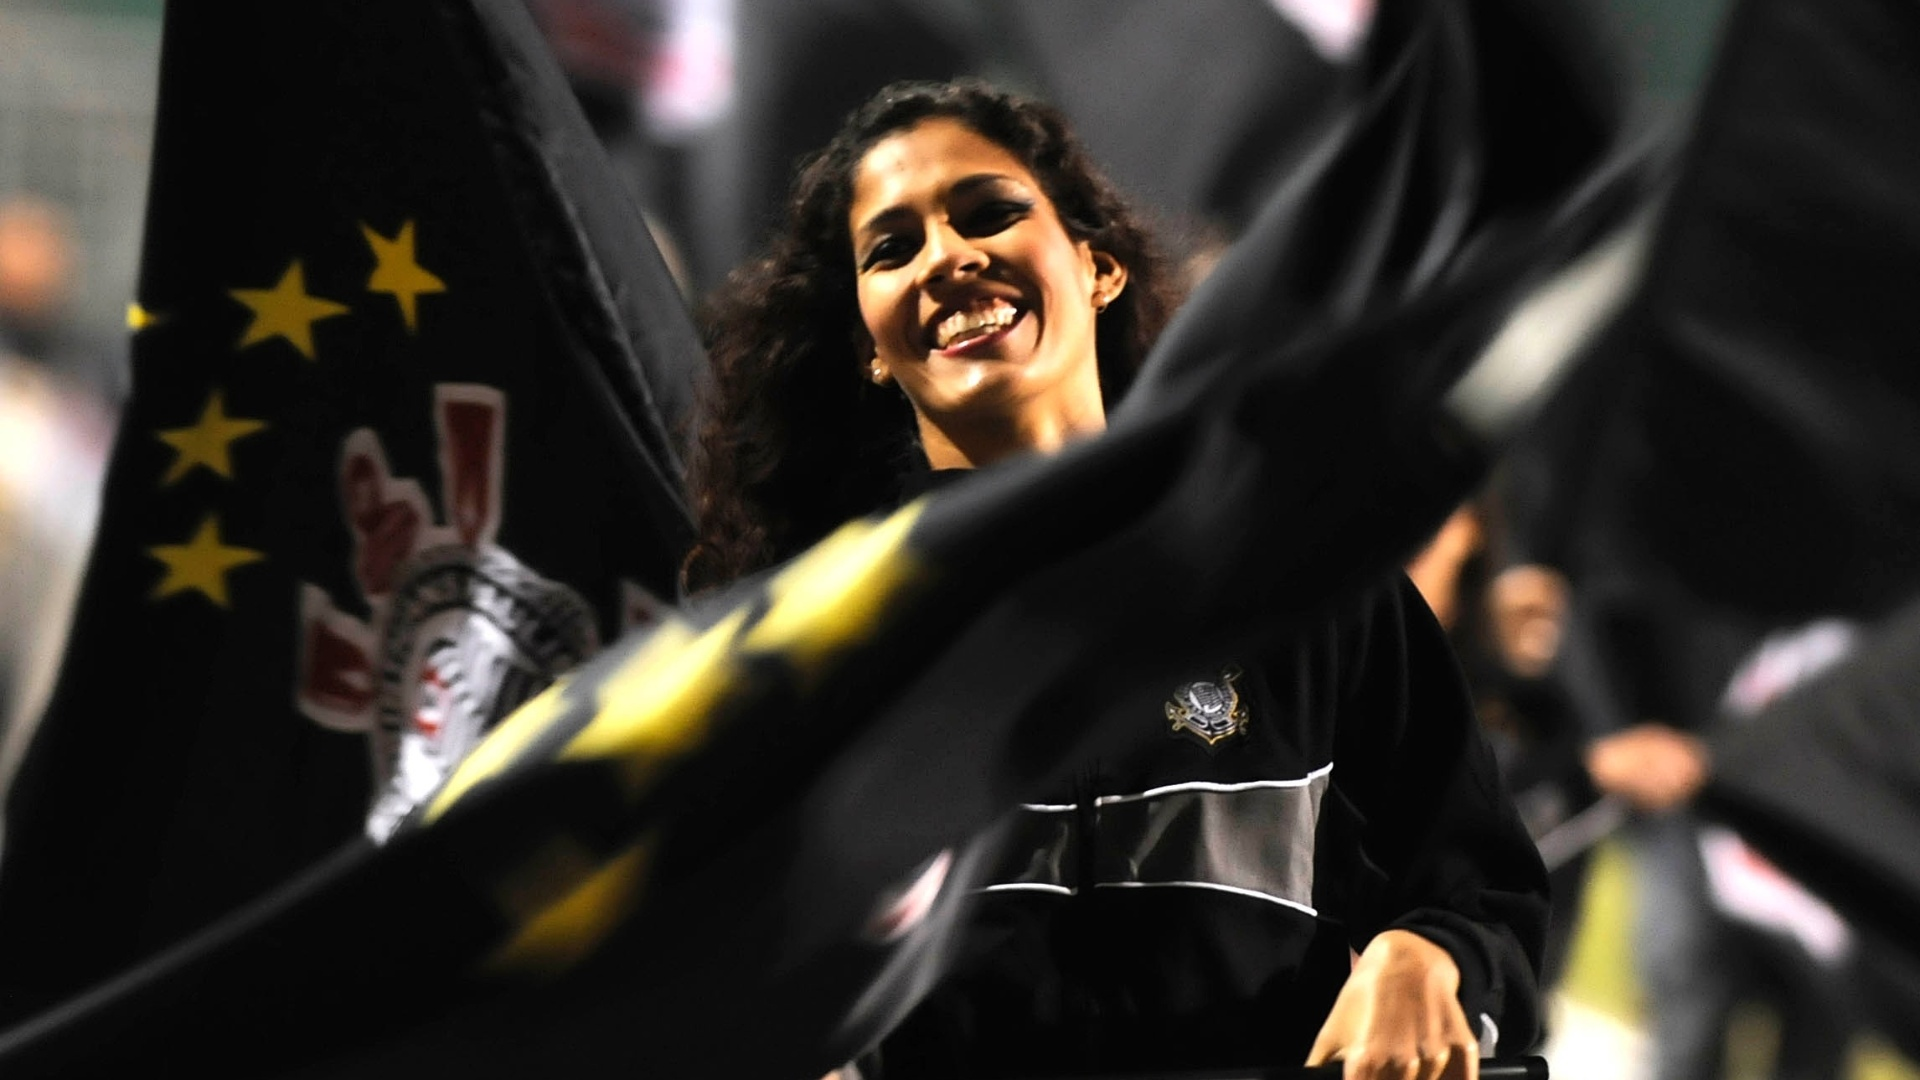 Cheerleaders do Corinthians fazem apresentao no Pacaembu antes de partida contra o Vasco (06/07/11)